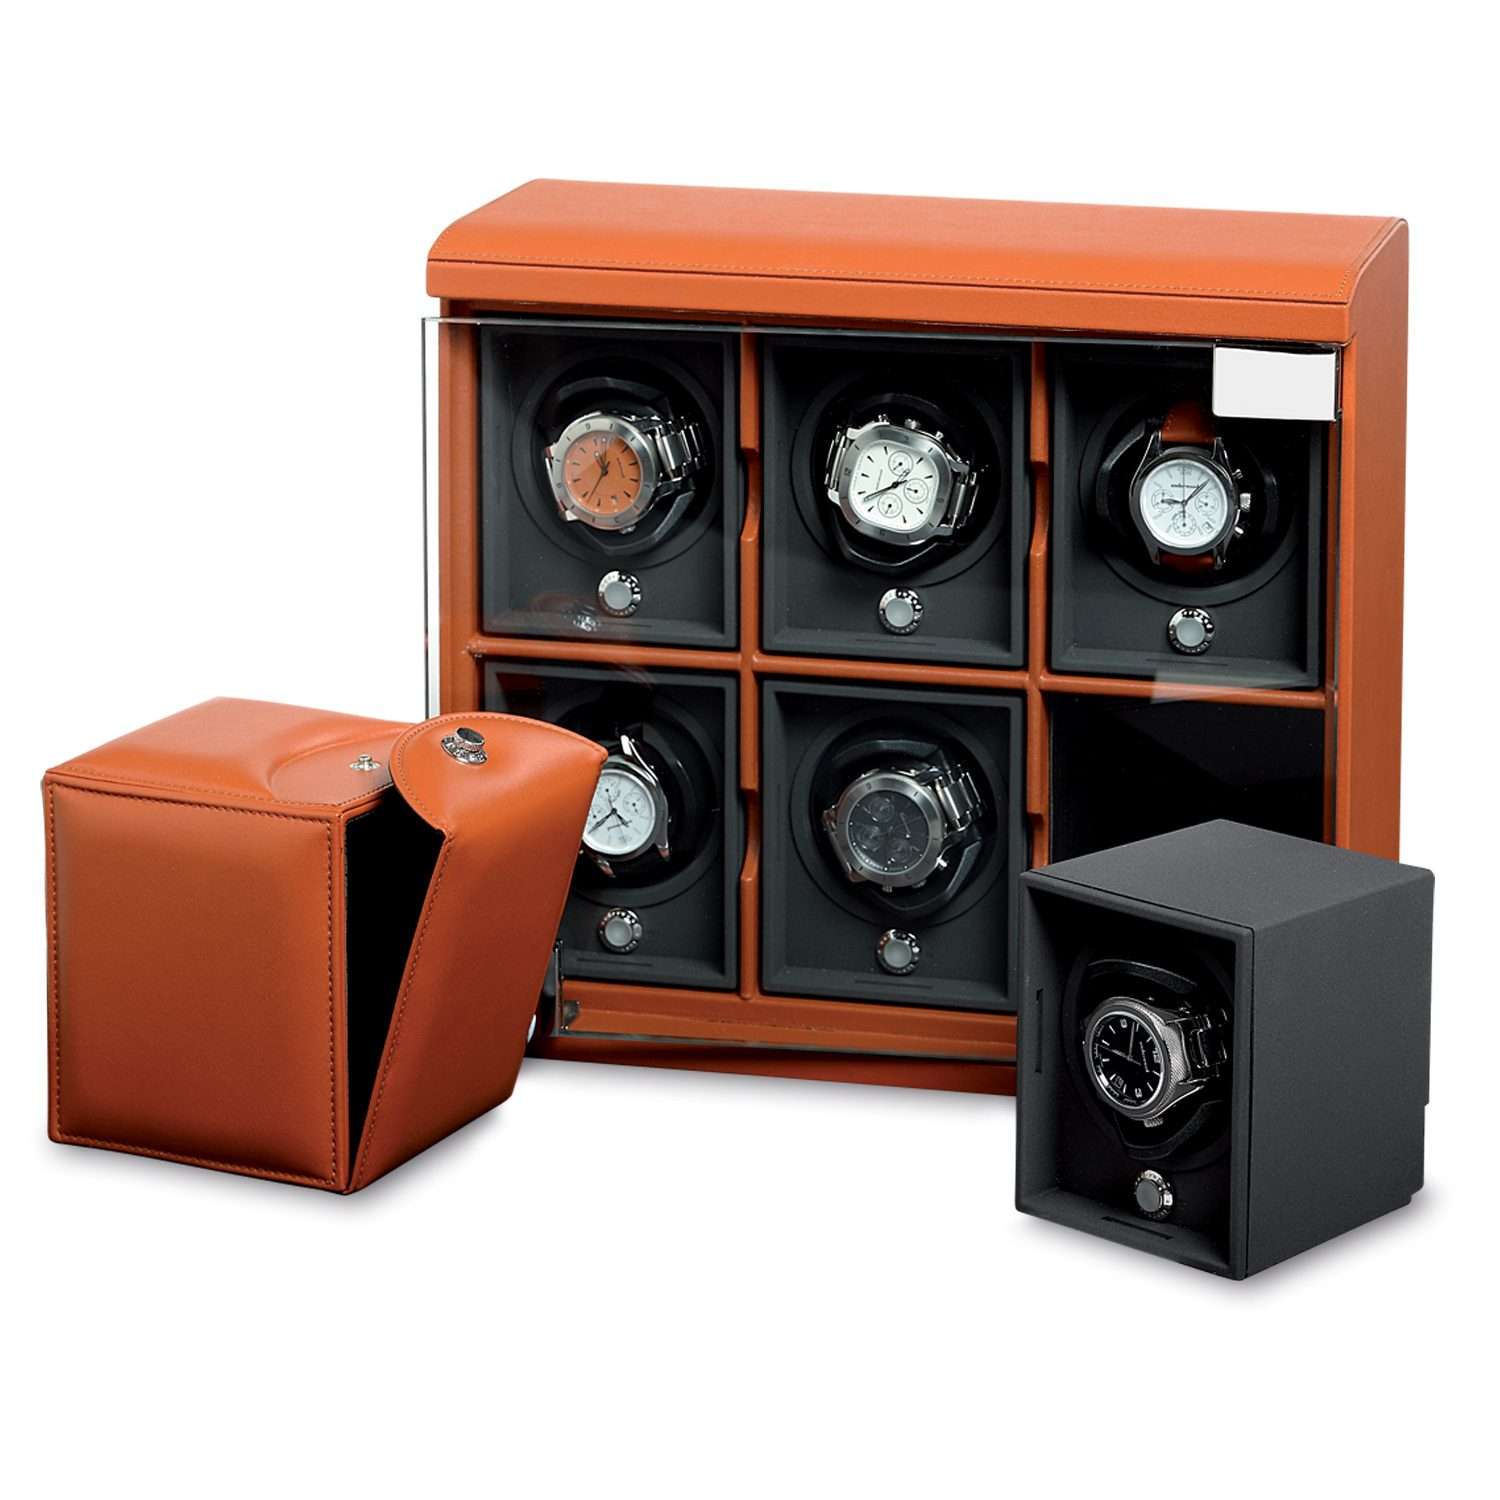 Watch-winder-for-6-watches